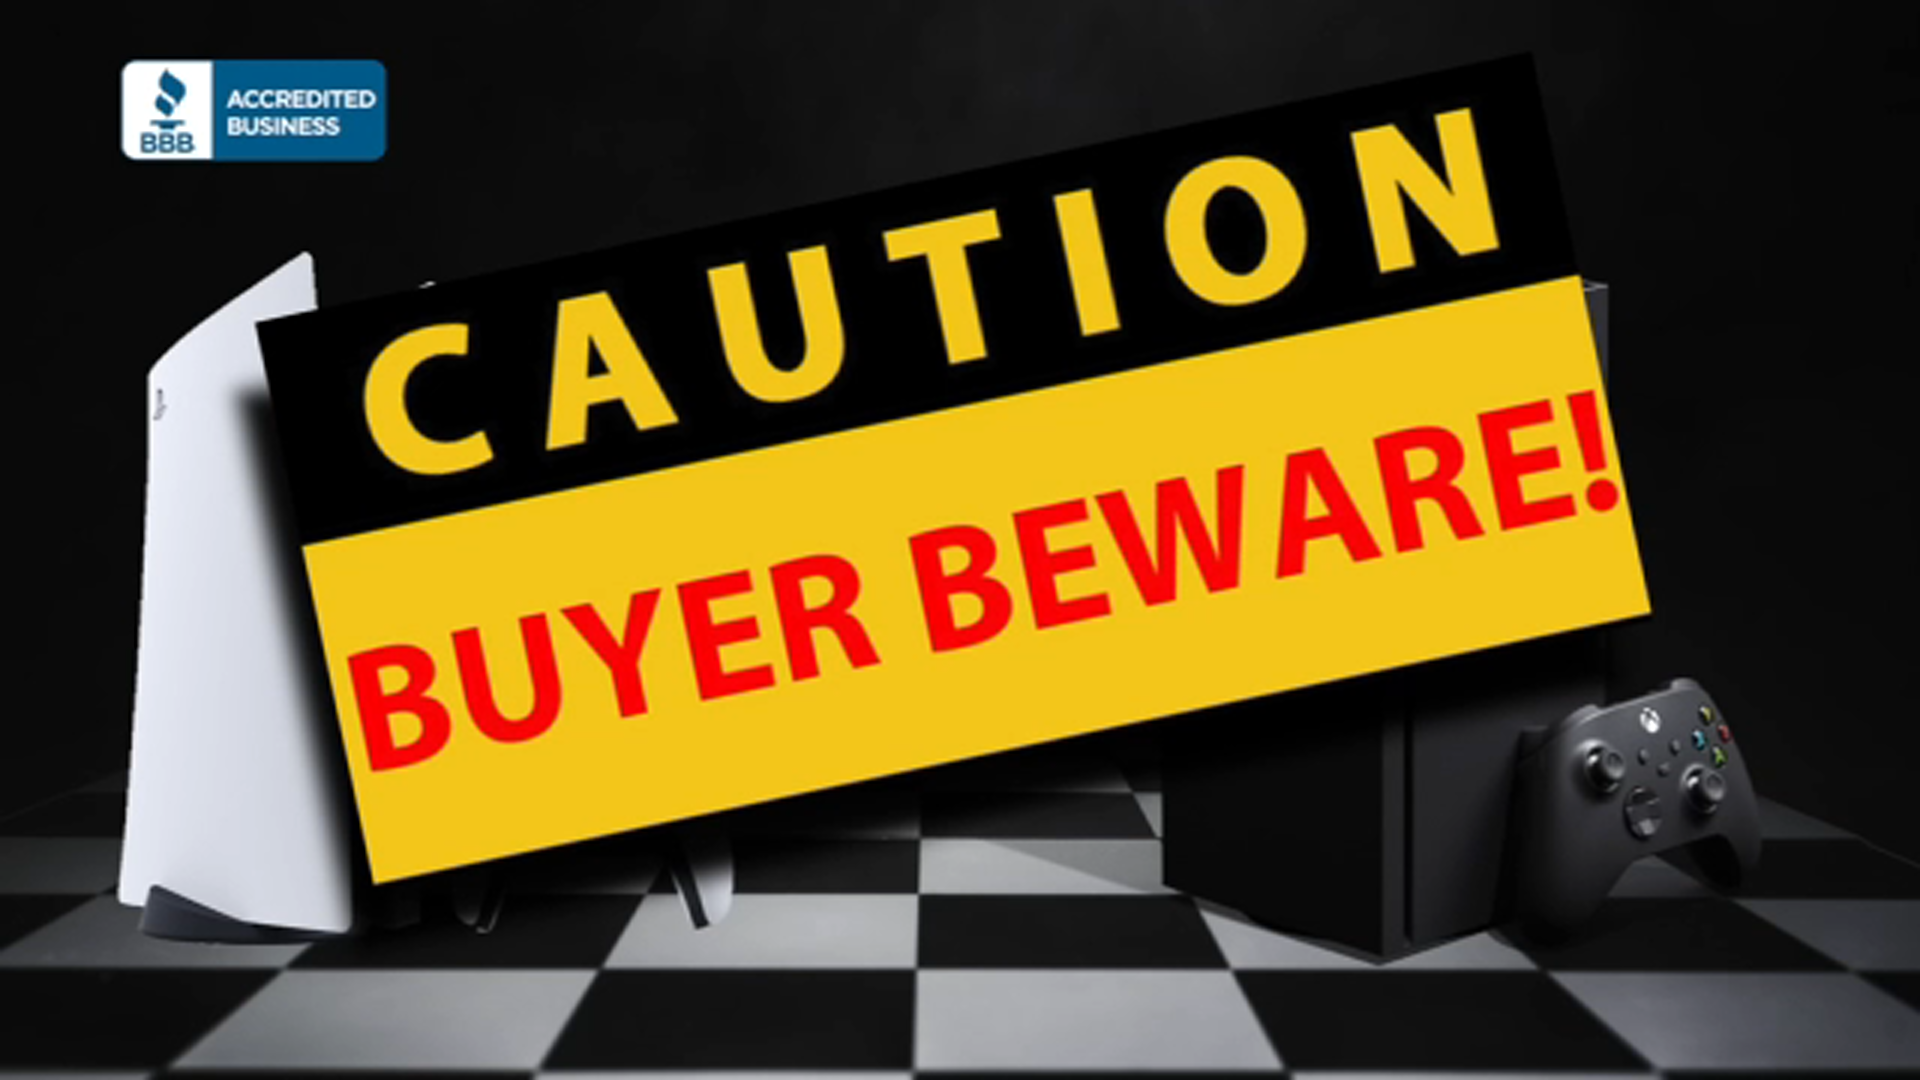 Want a PS5 or Xbox One? Watch out for these scam warning signs